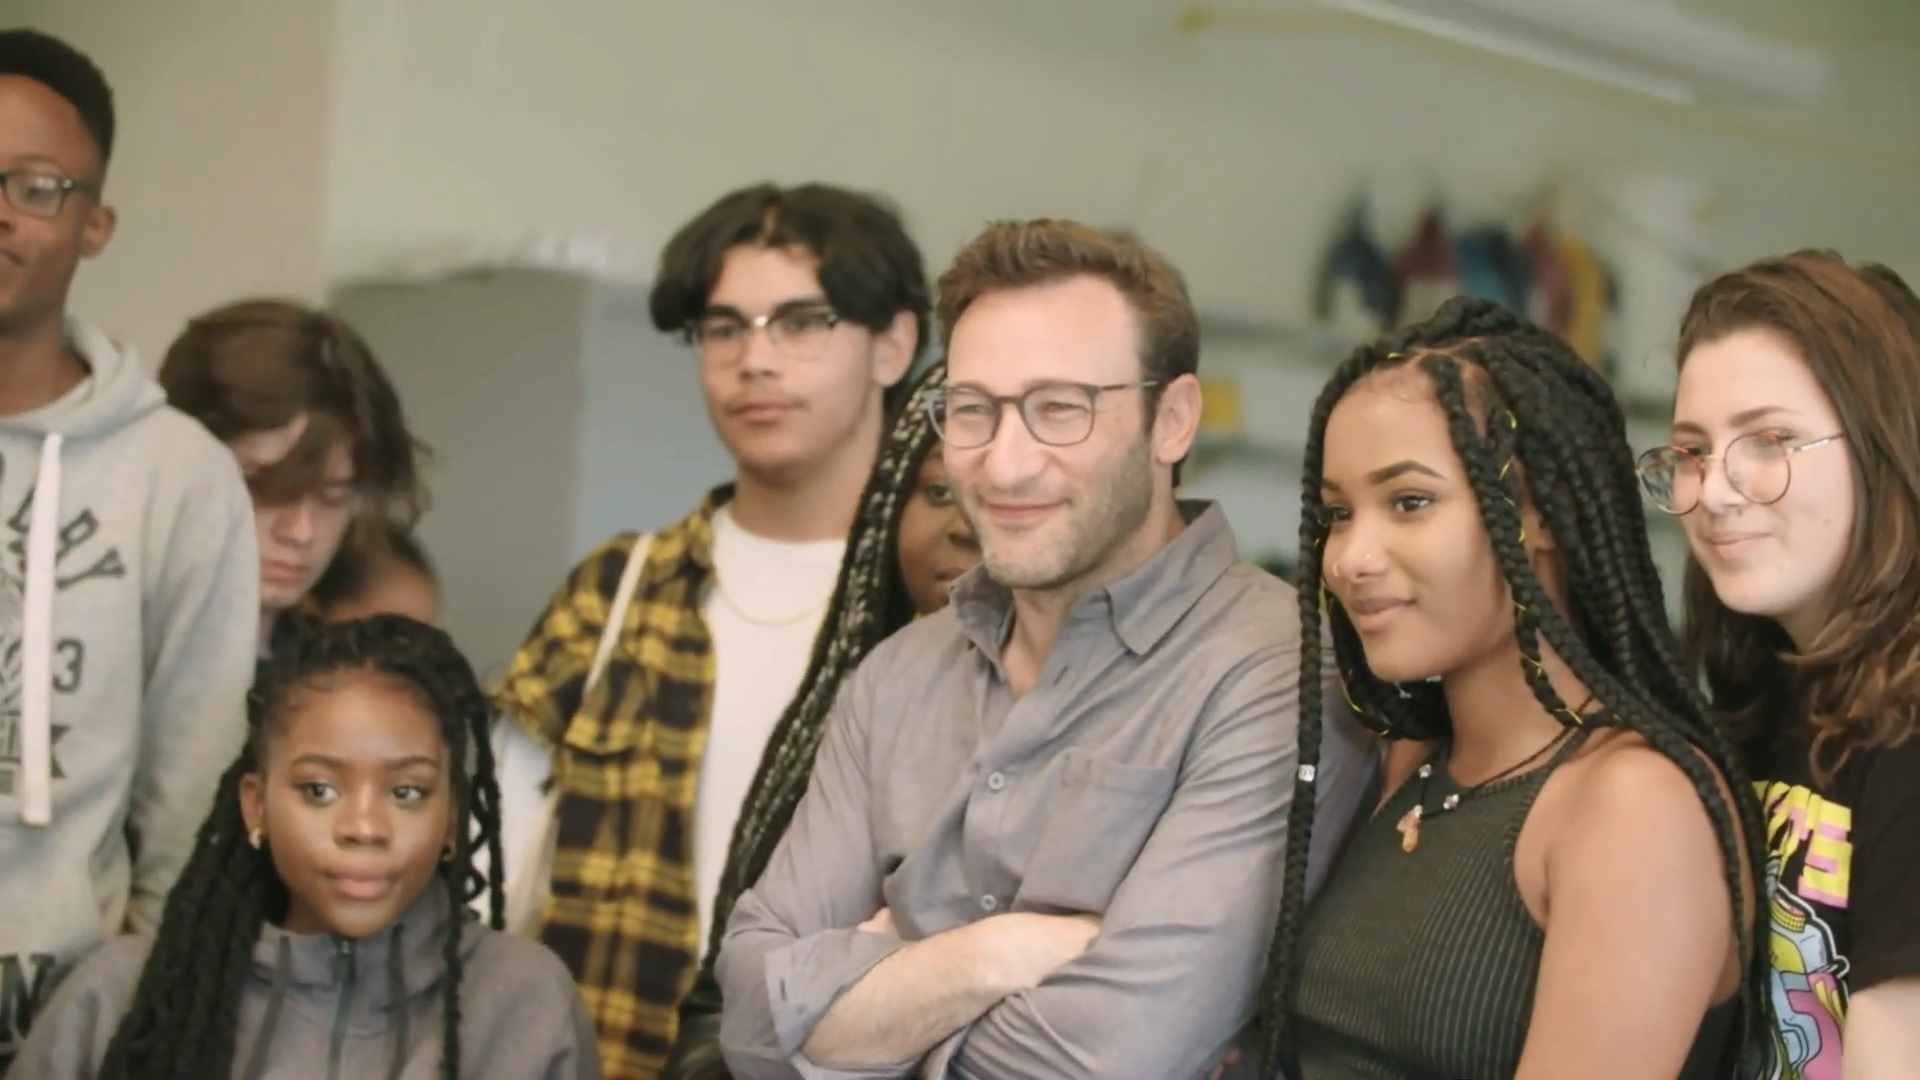 Simon Sinek: Re-Imagining Education – Watch on Youtube